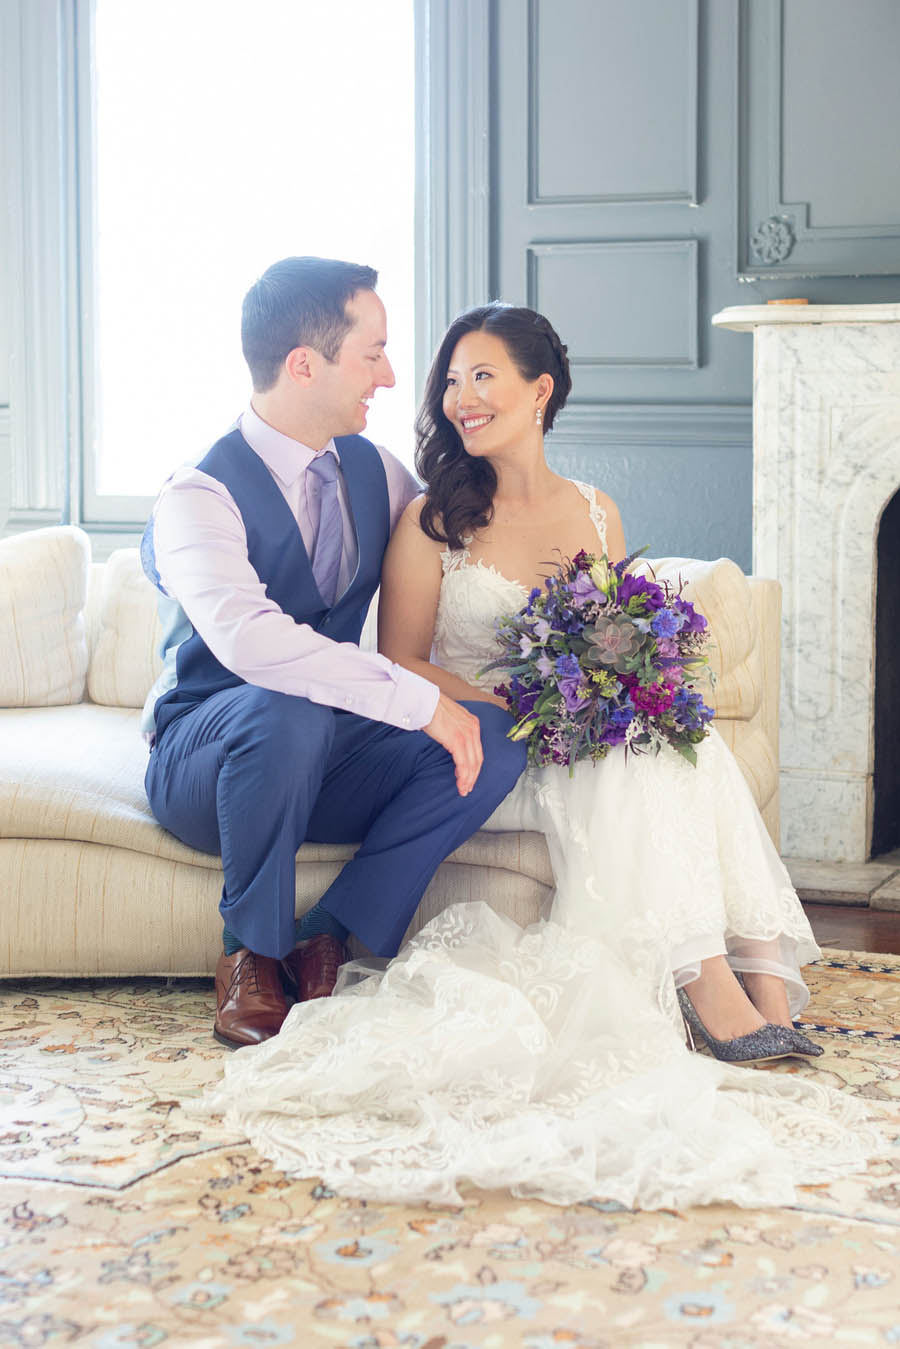 bride and groom smile at each other in front of fireplace